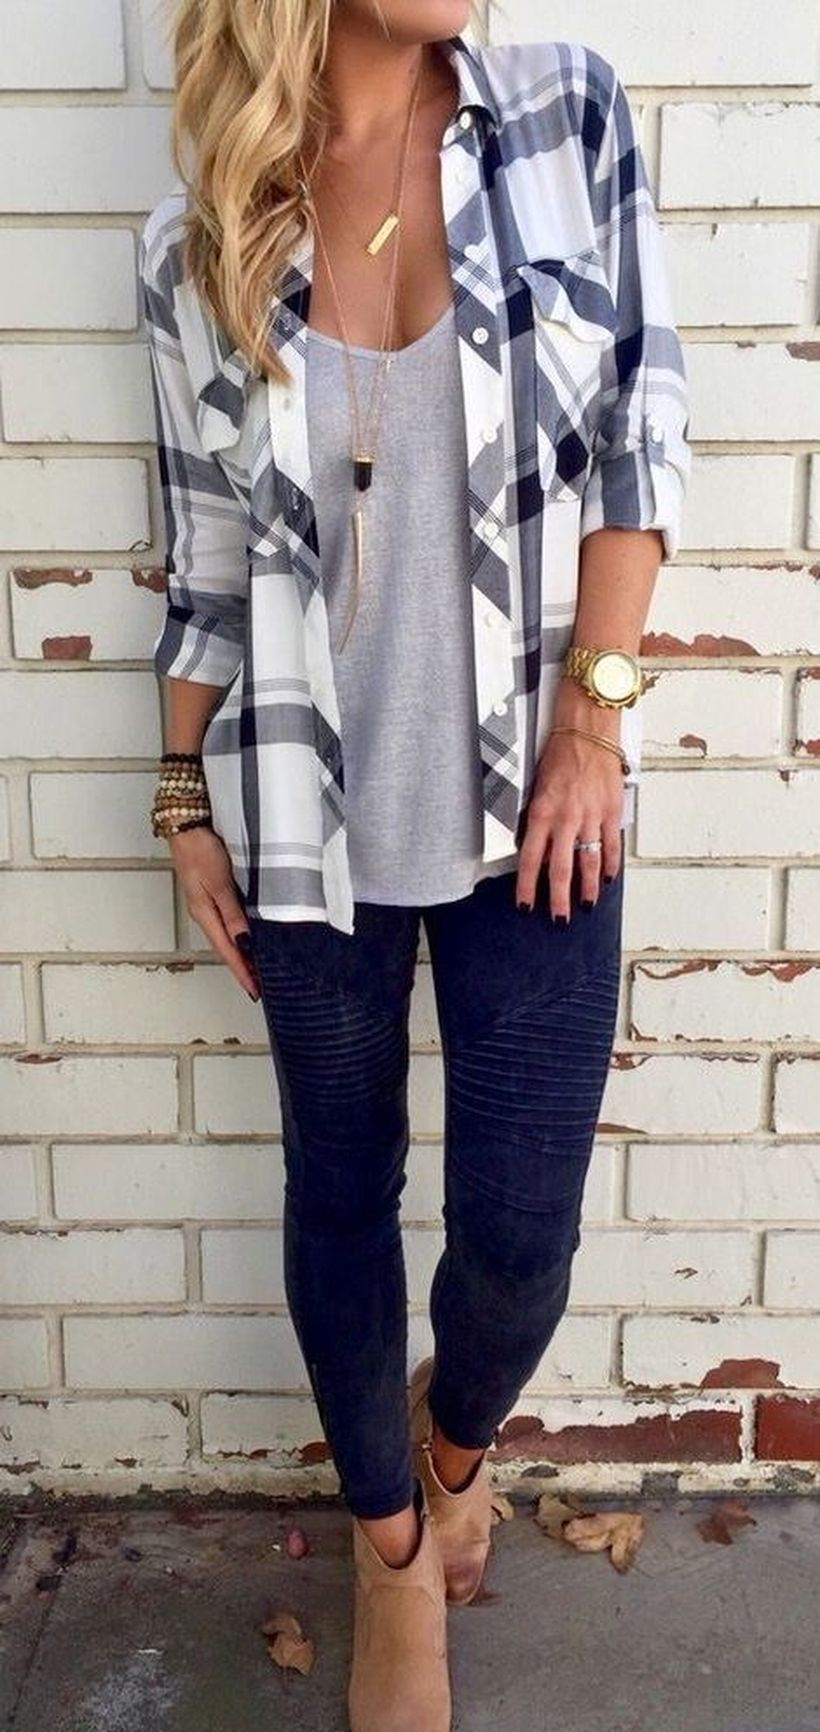 Casual fall fashions trend inspirations 2017 40 - Fashion Best